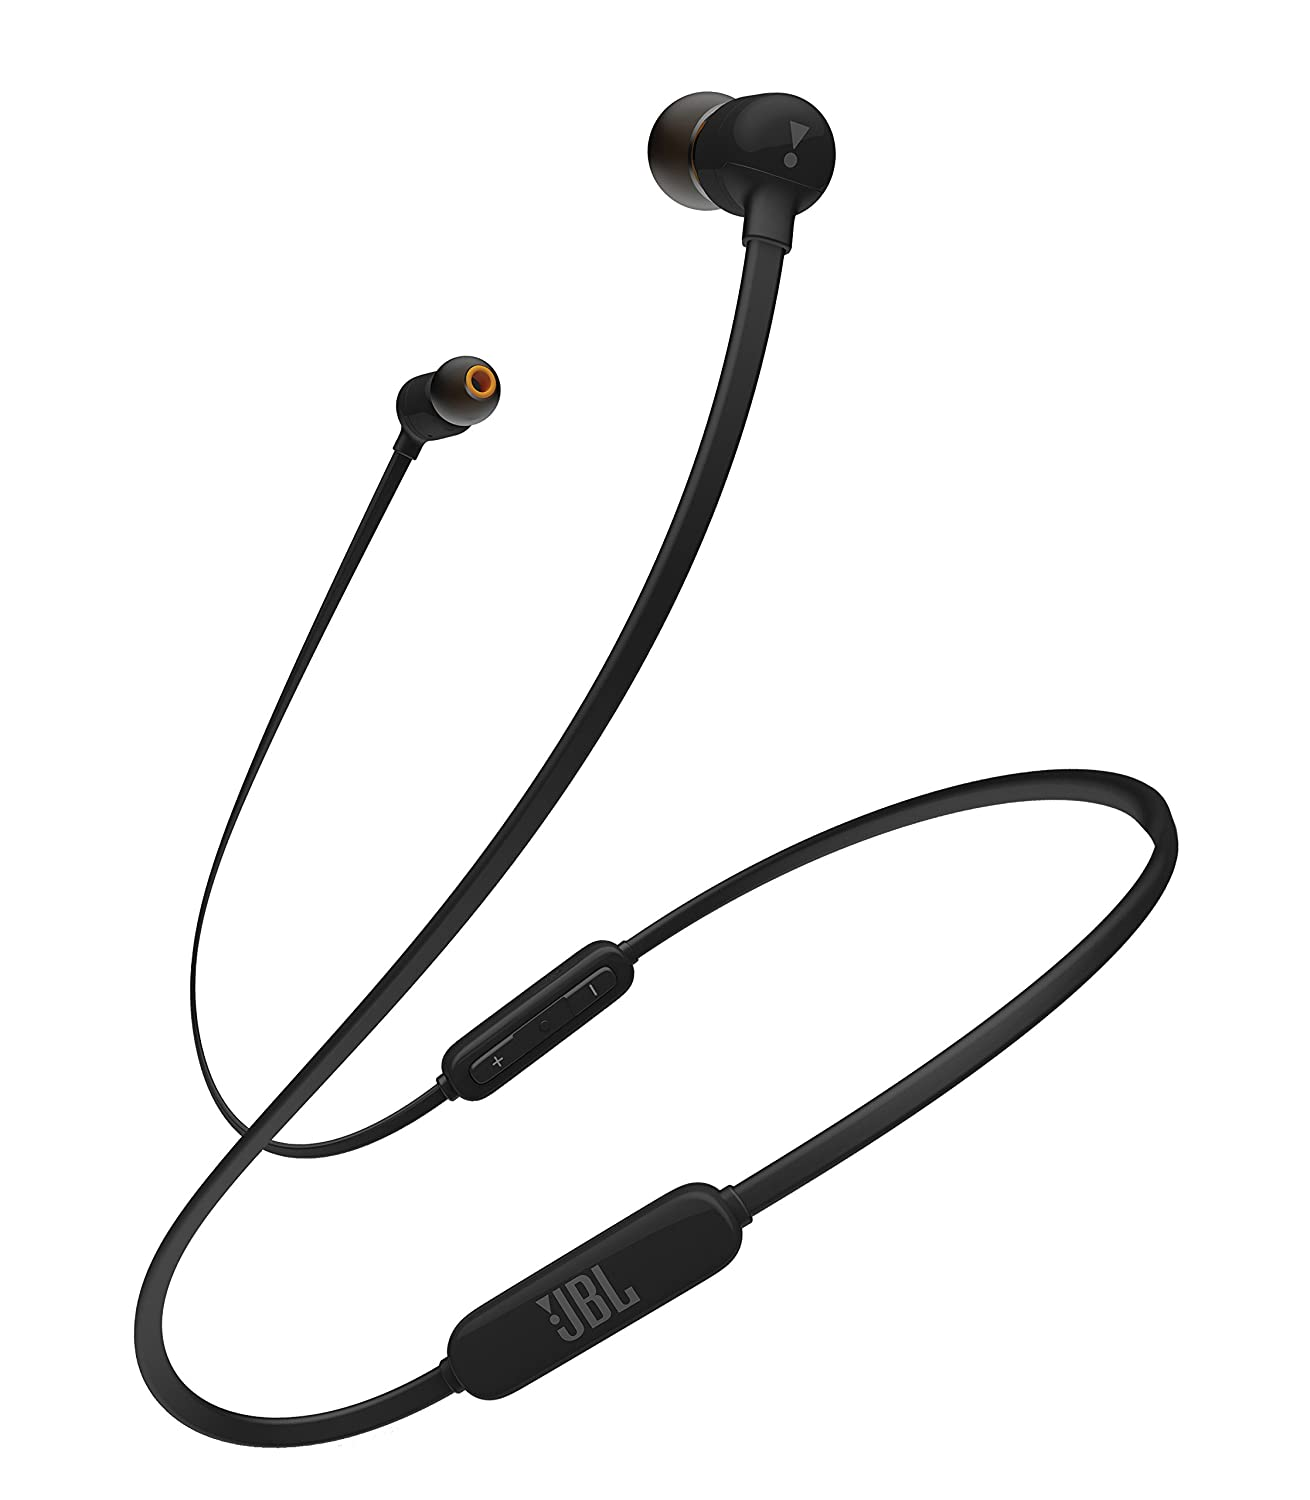 JBL Sealed Dynamic Type Bluetooth Wireless Canal Earphone T110BT-BLK (Black)【Japan Domestic Genuine Products】 JBLT110BTBLKJN